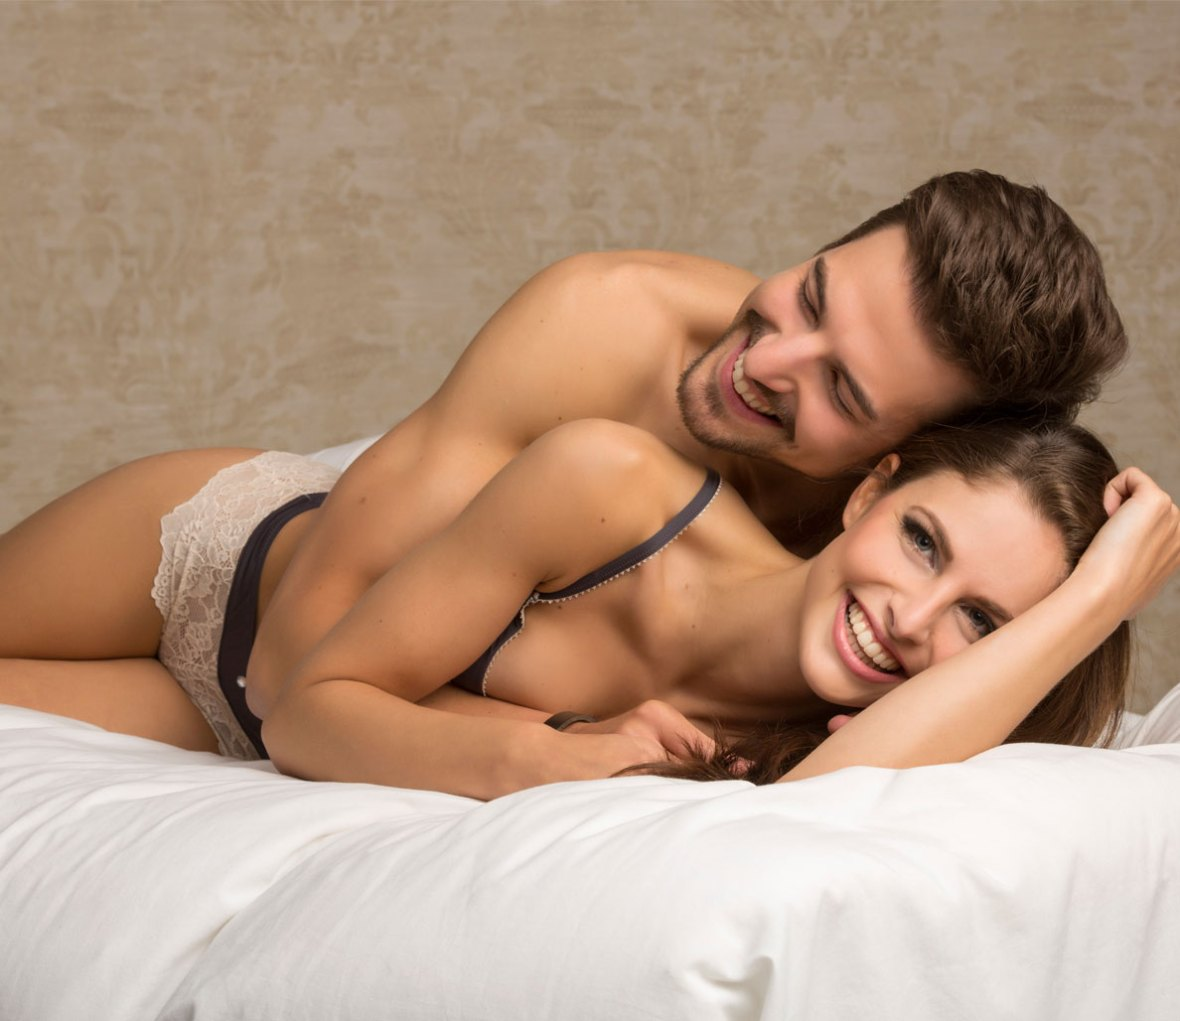 Positions girl surprise new your 2017 to sex Best Tips